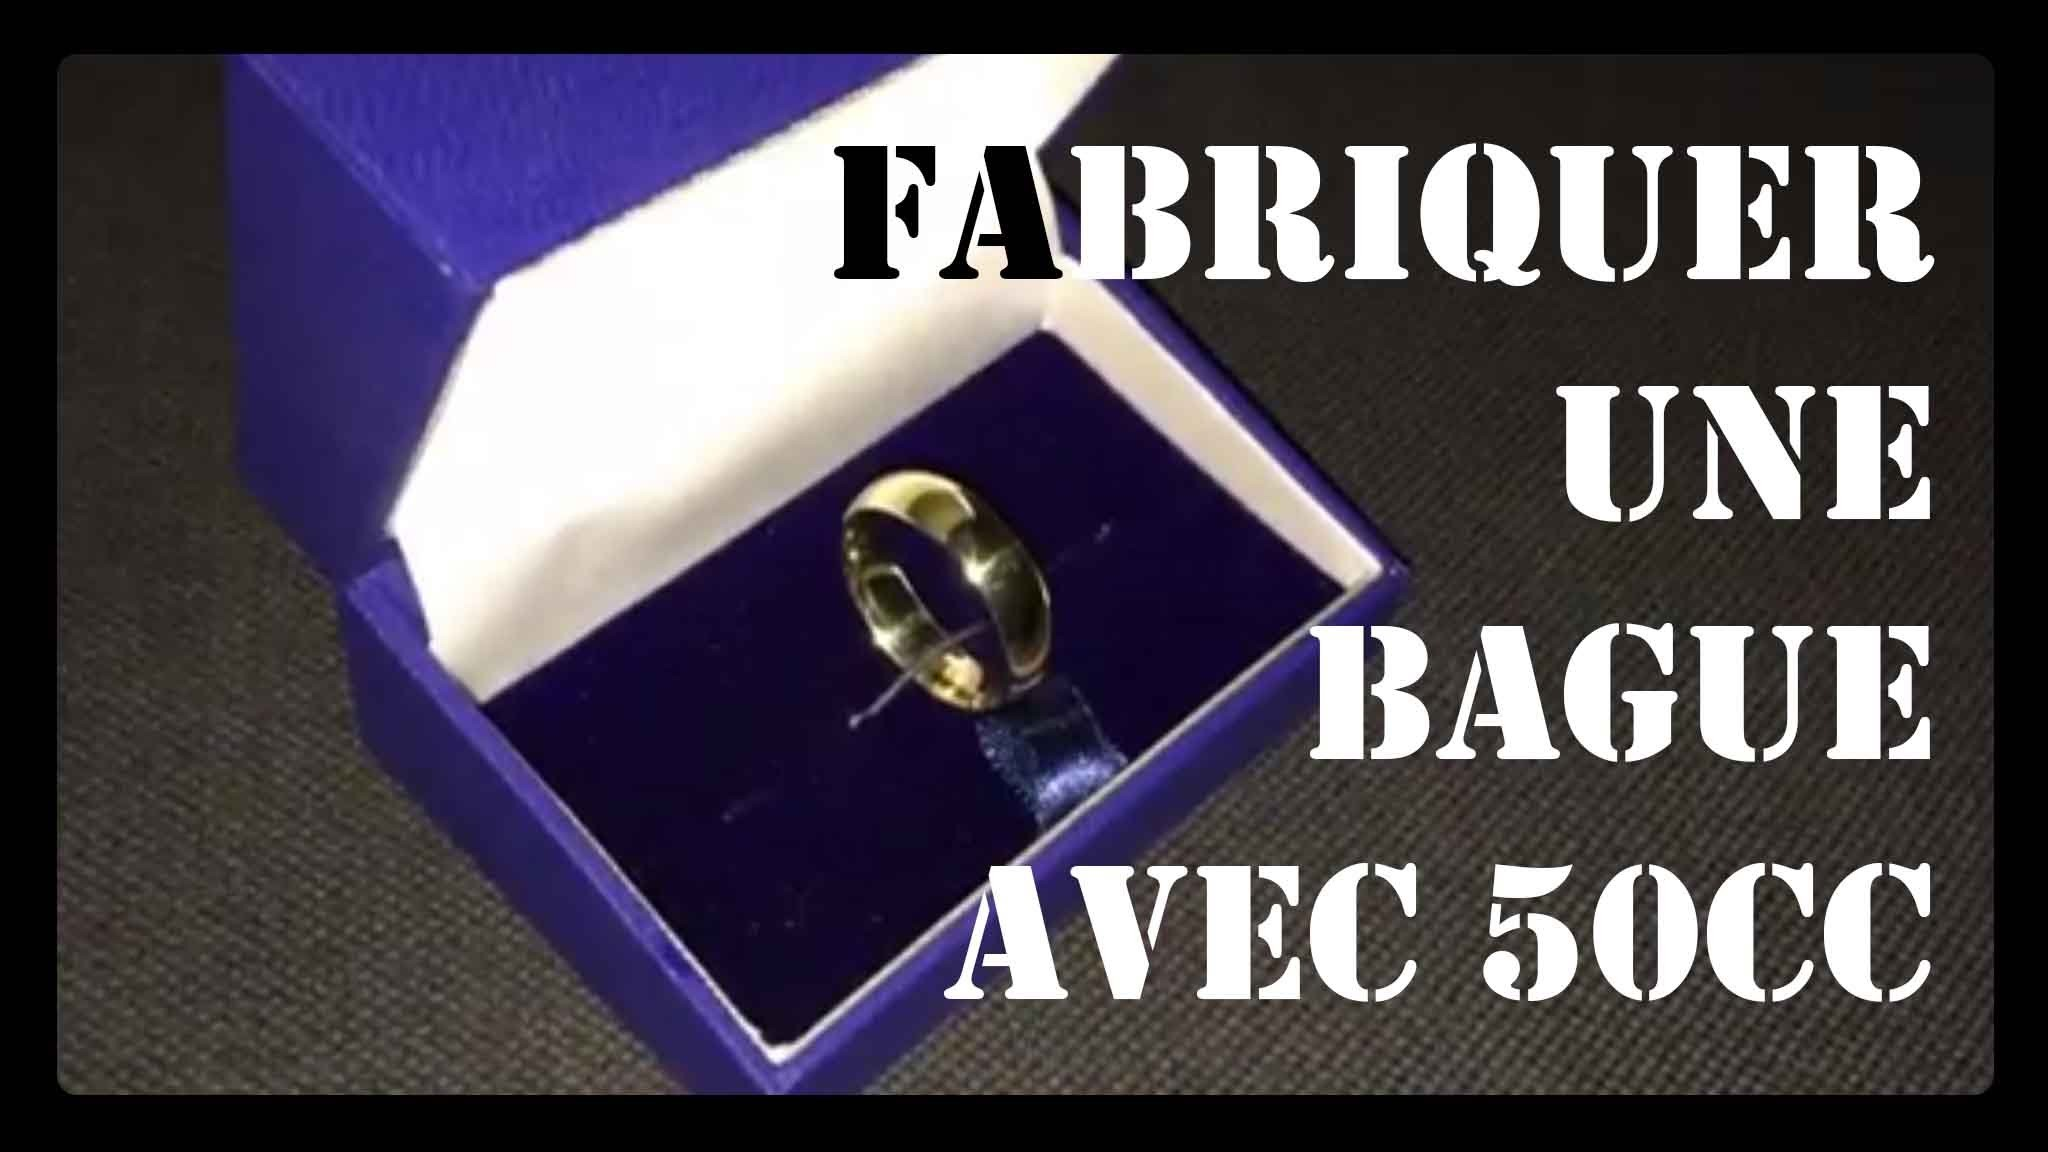 fabriquer une bague avec une pi ce turn a coin into a ring my crafts and diy projects. Black Bedroom Furniture Sets. Home Design Ideas